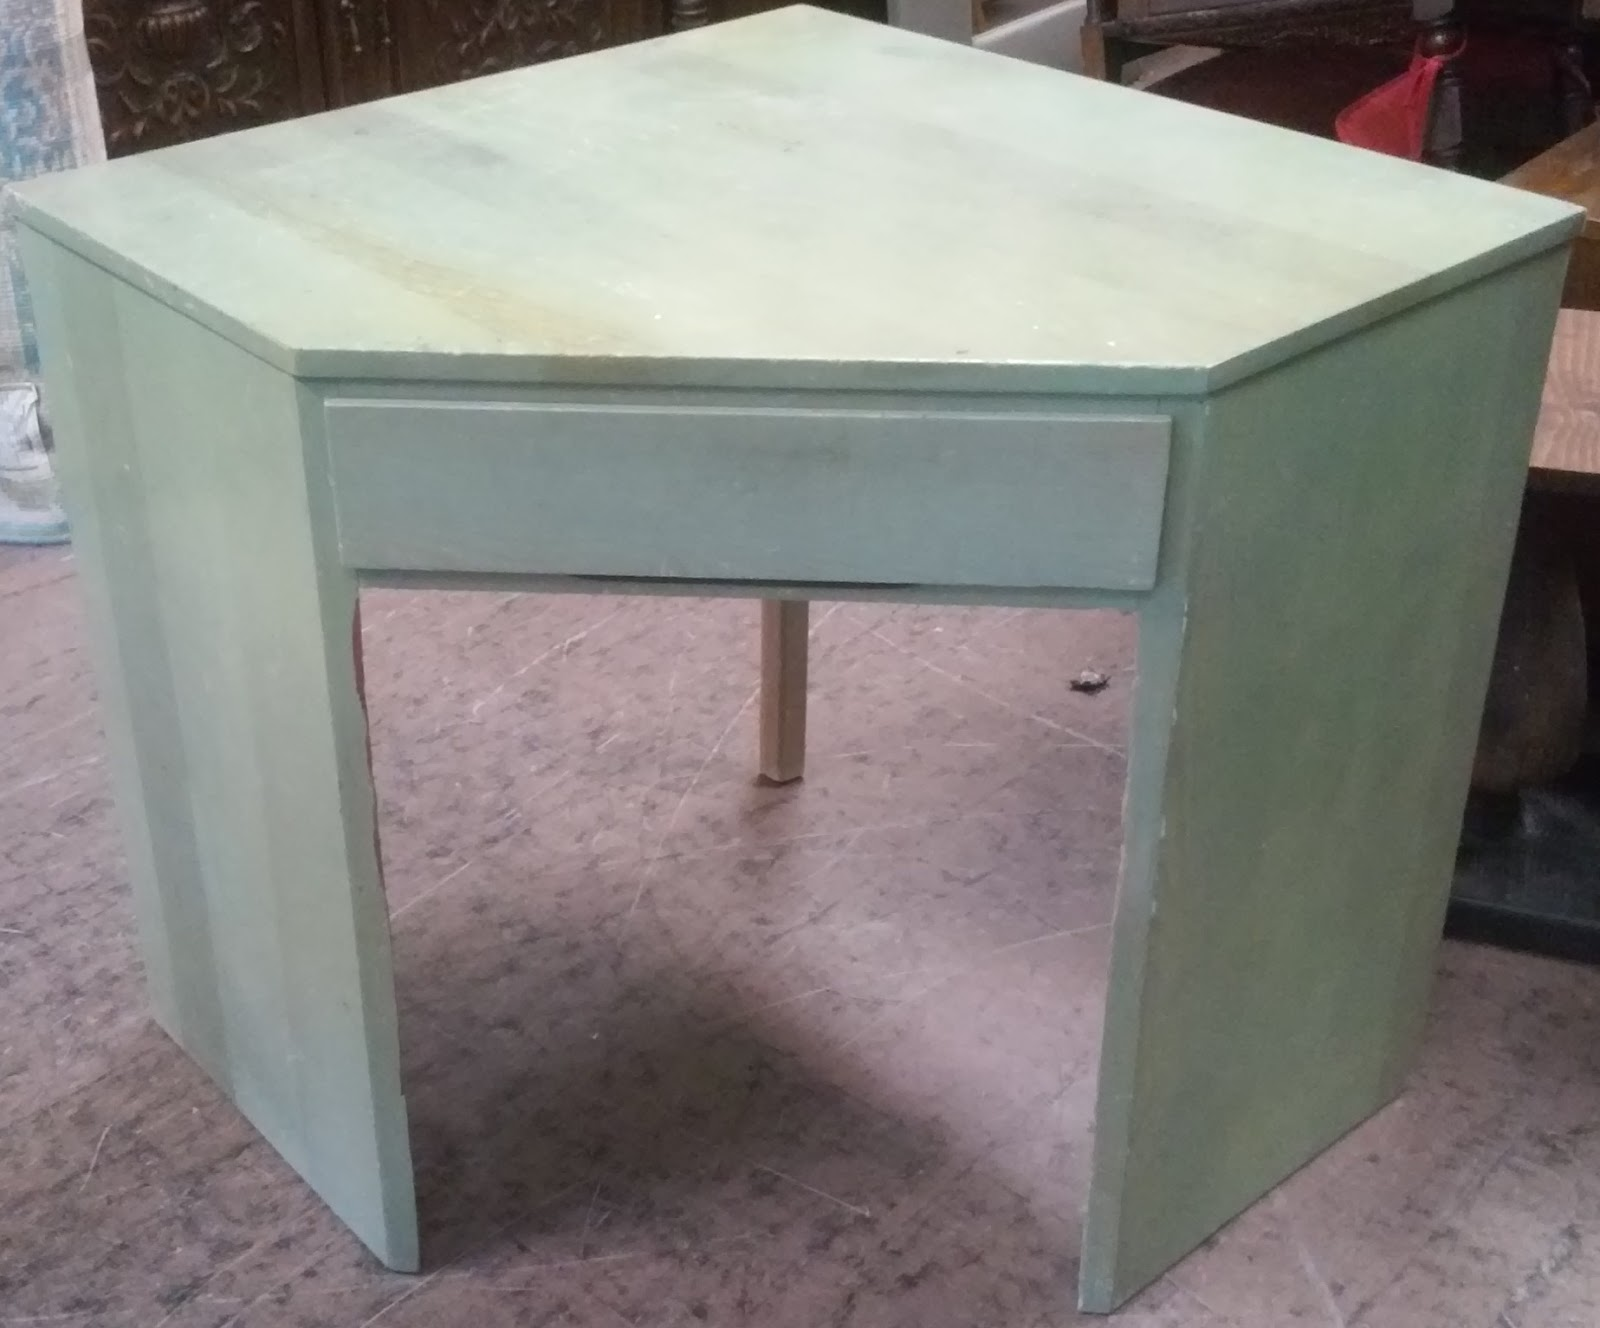 Uhuru furniture collectibles sold painted pine corner desk 25 - Pine corner desks ...